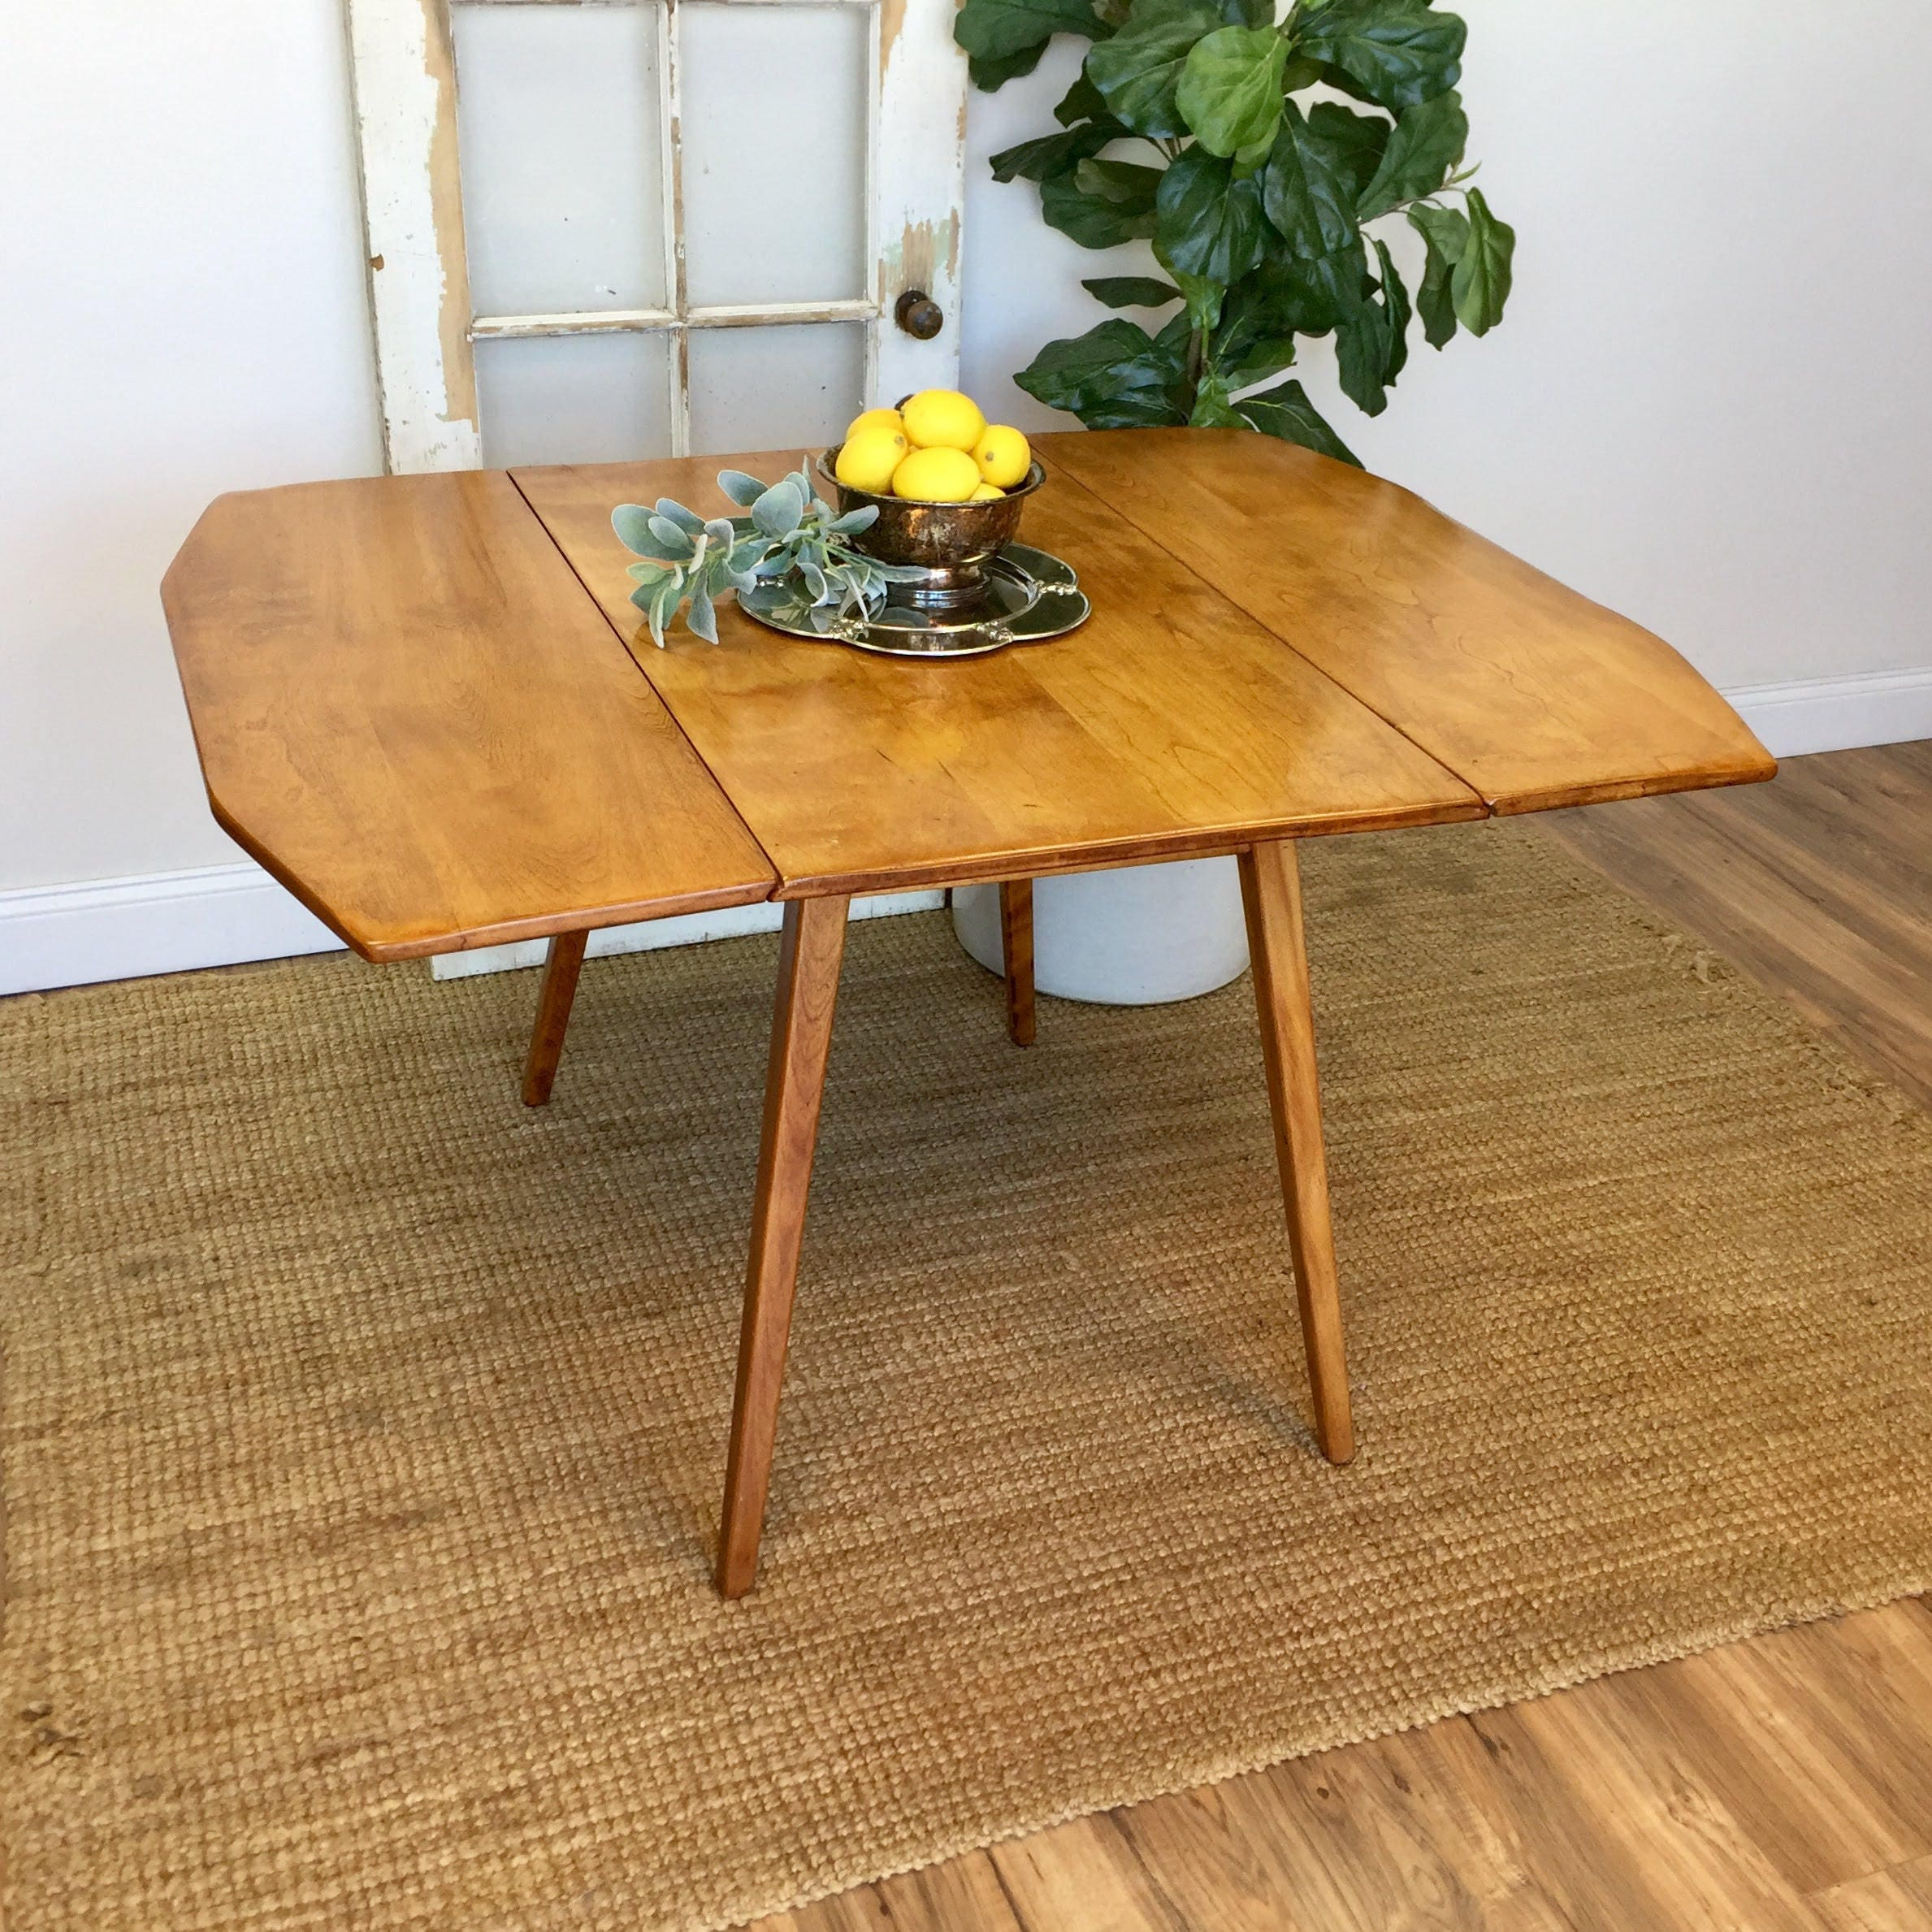 Drop Leaf Dining Table - Small Apartment Furniture - Fold Down ...